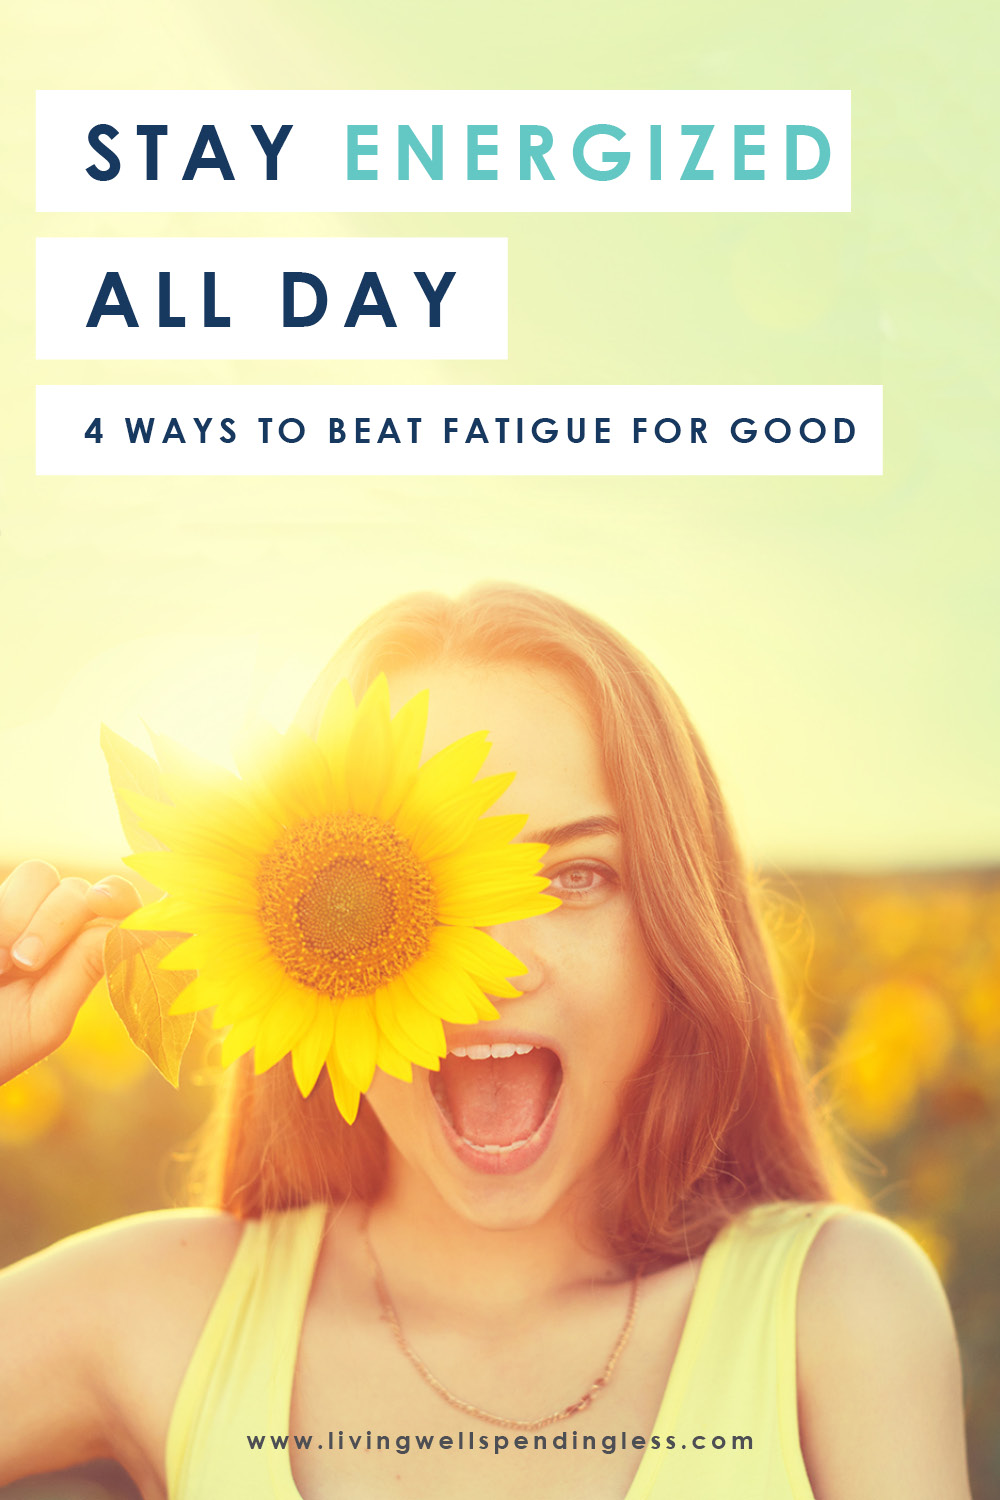 Wish you knew how to stay energized all day? Here are some helpful strategies for permanently eliminating fatigue for good! #selfcare #motivation #eliminatestress #selfcaretips